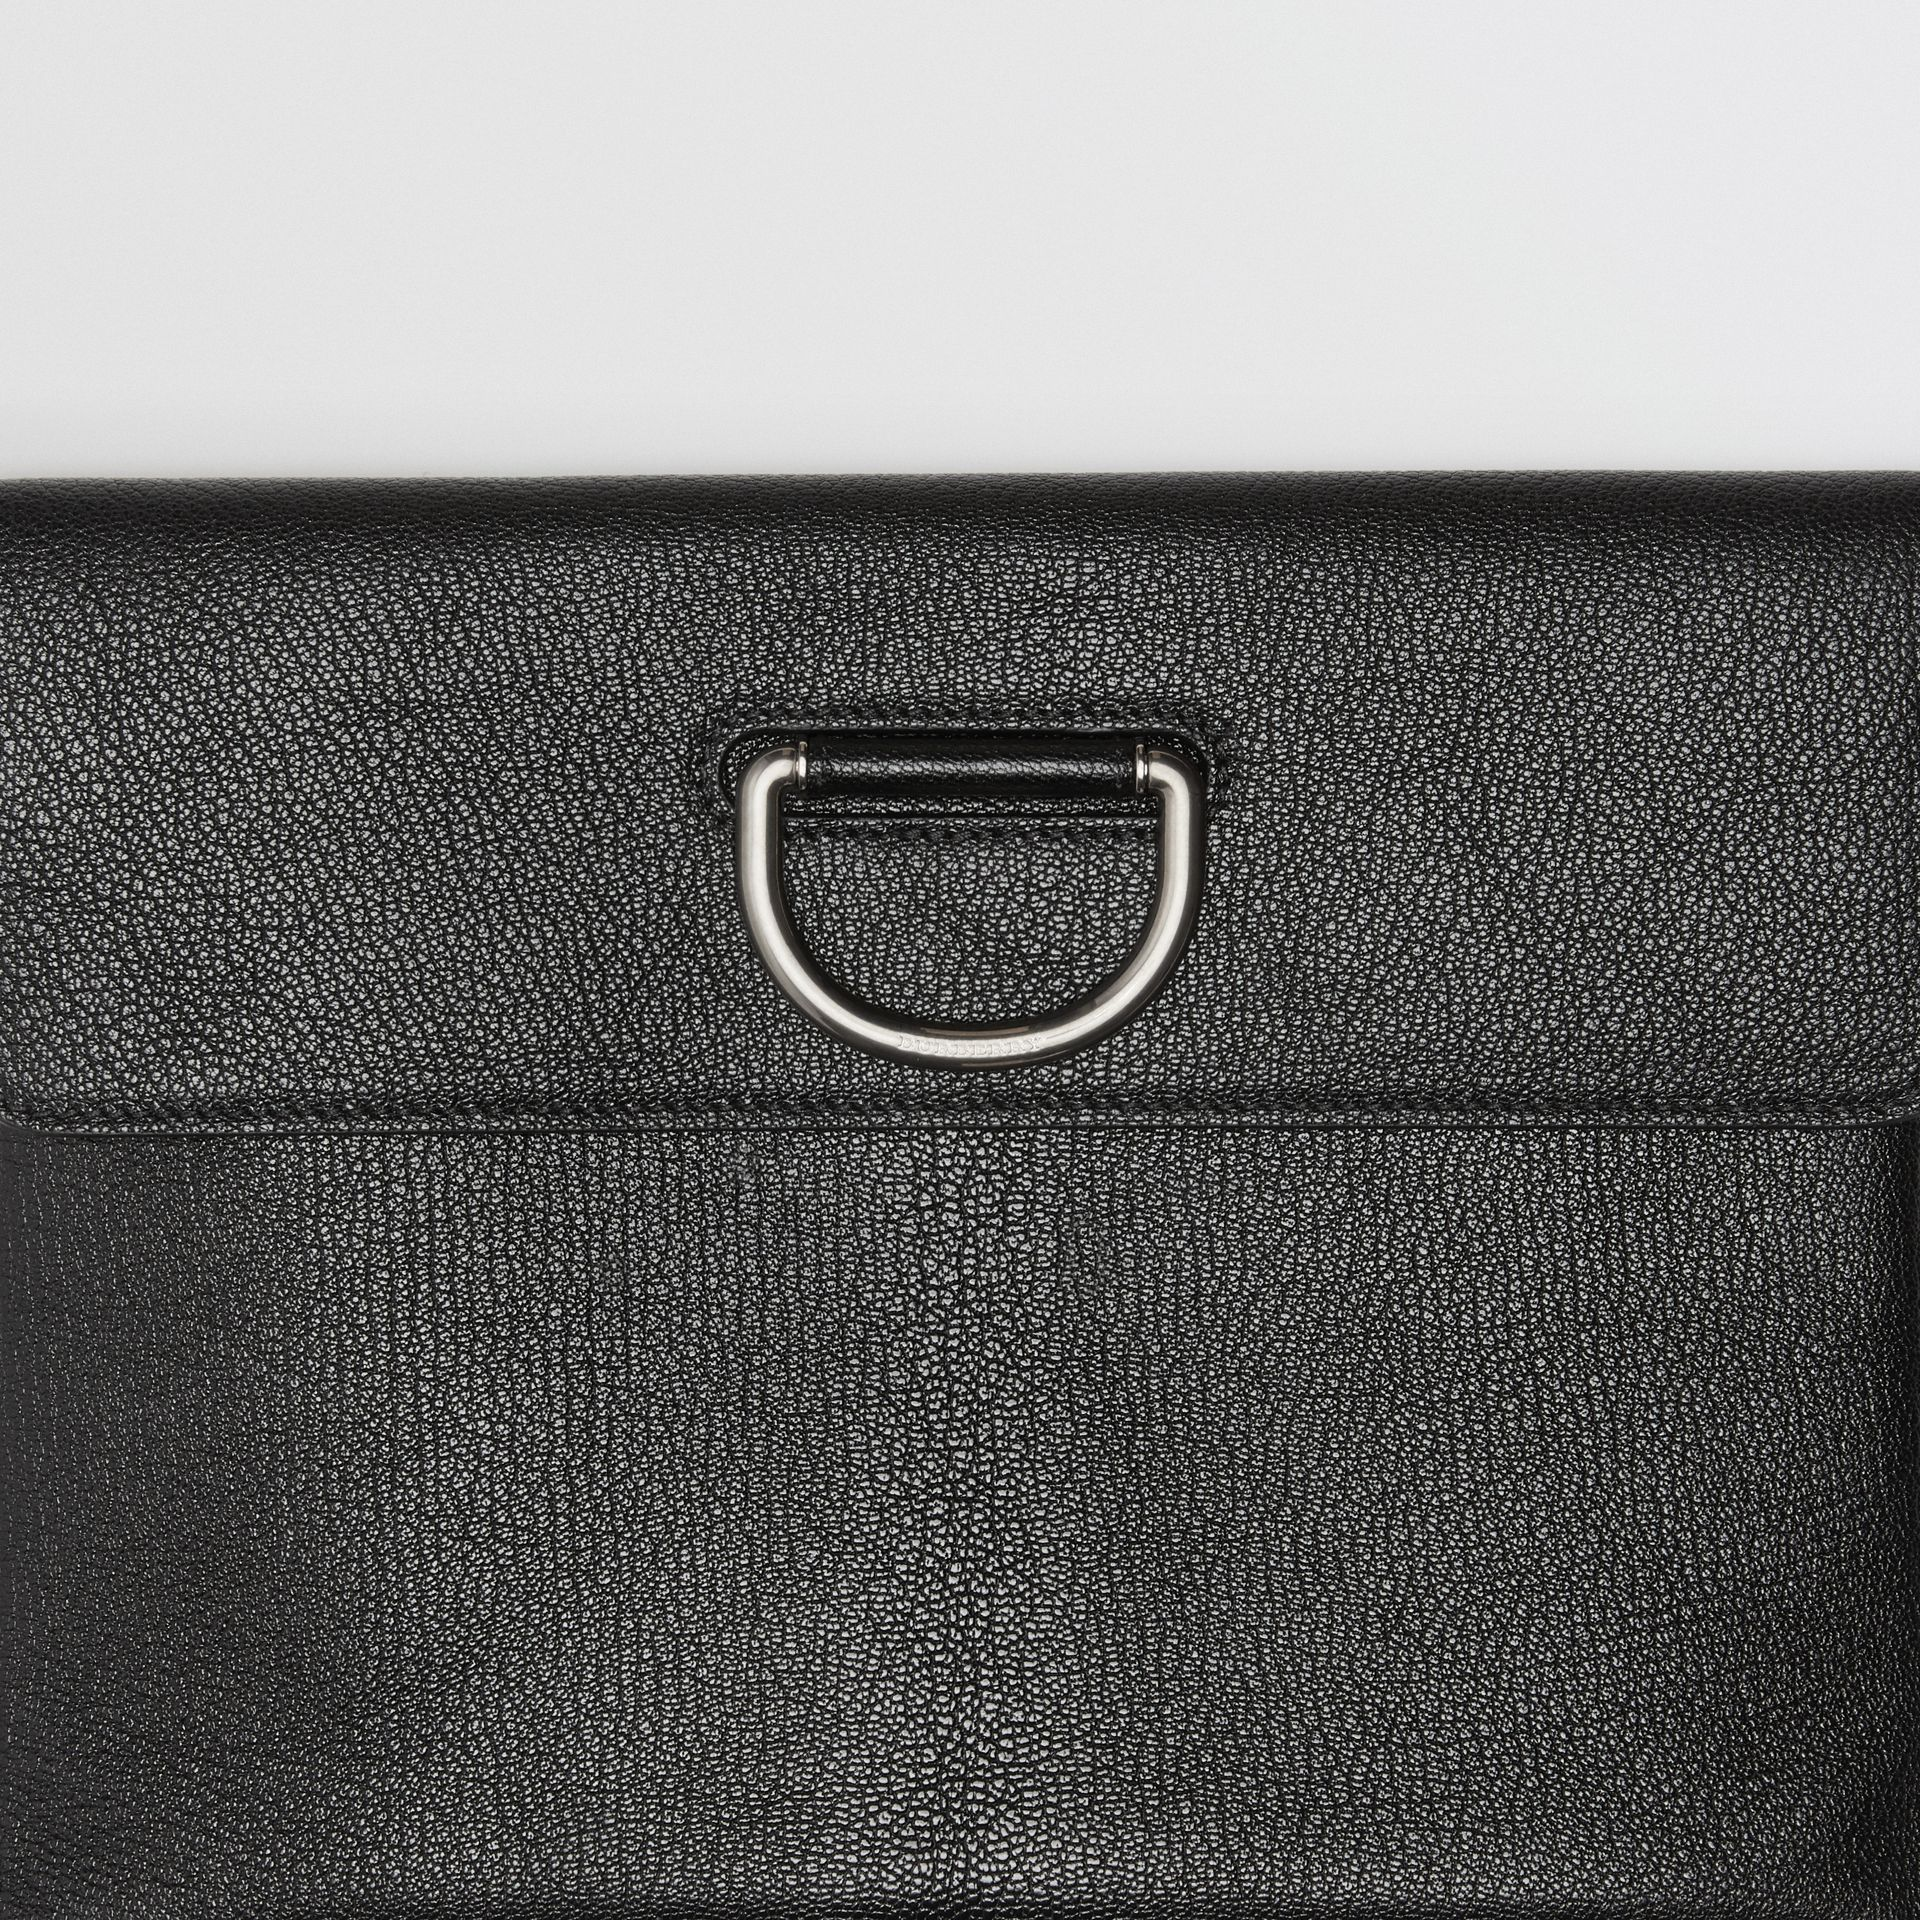 D-ring Leather Pouch in Black - Women | Burberry Australia - gallery image 1